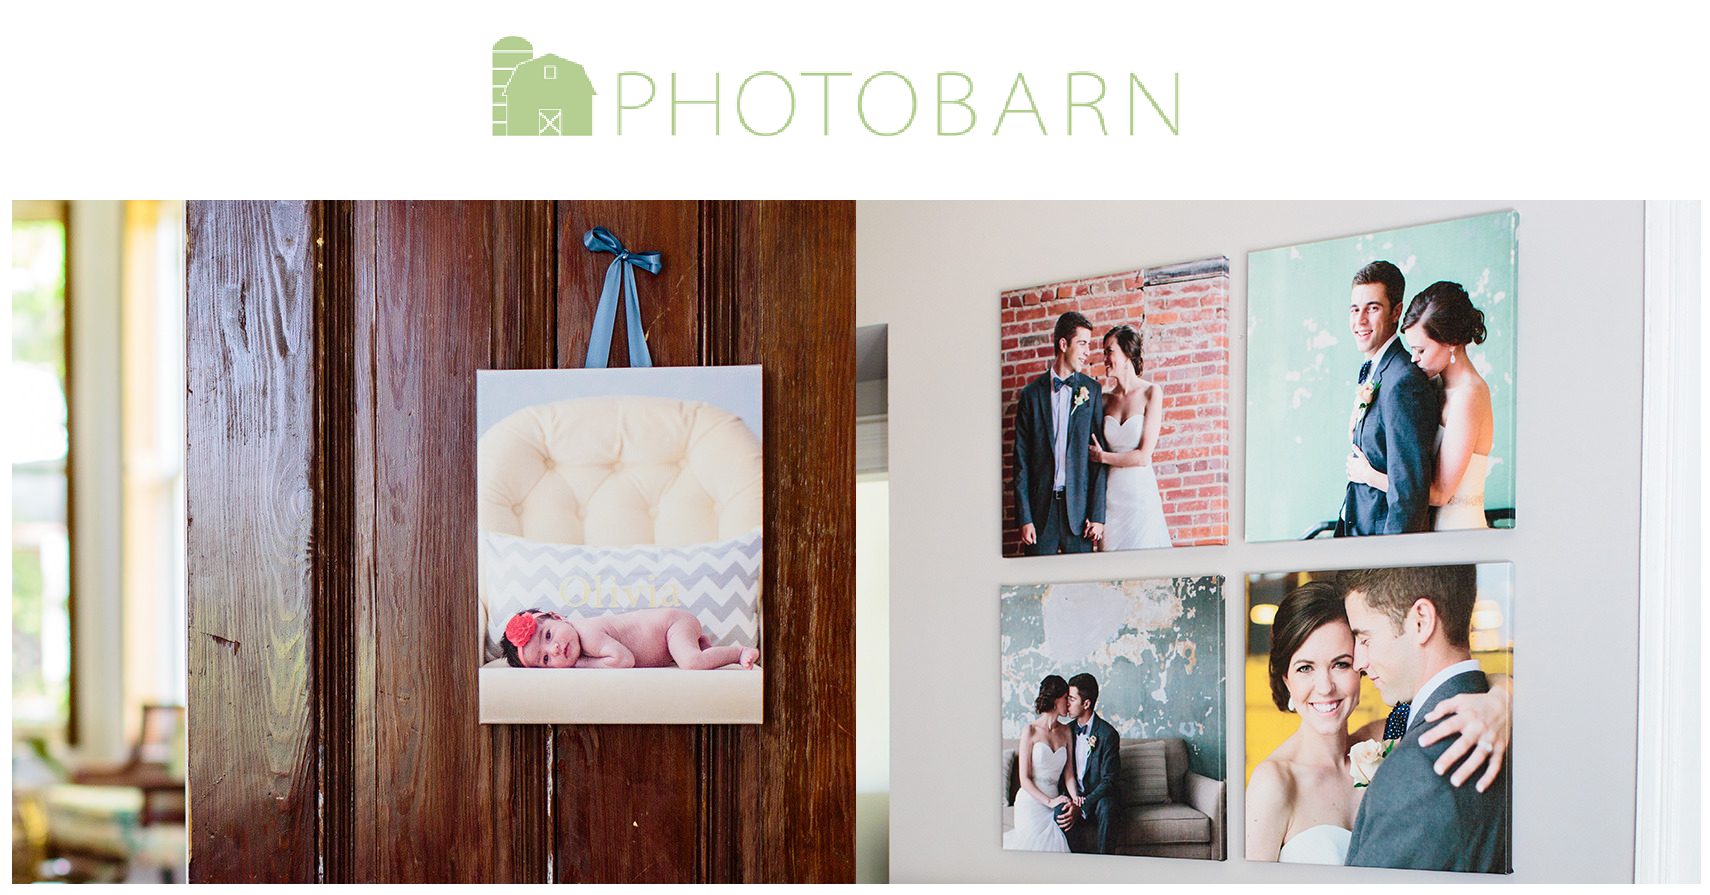 freebies2deals-photobarnprint